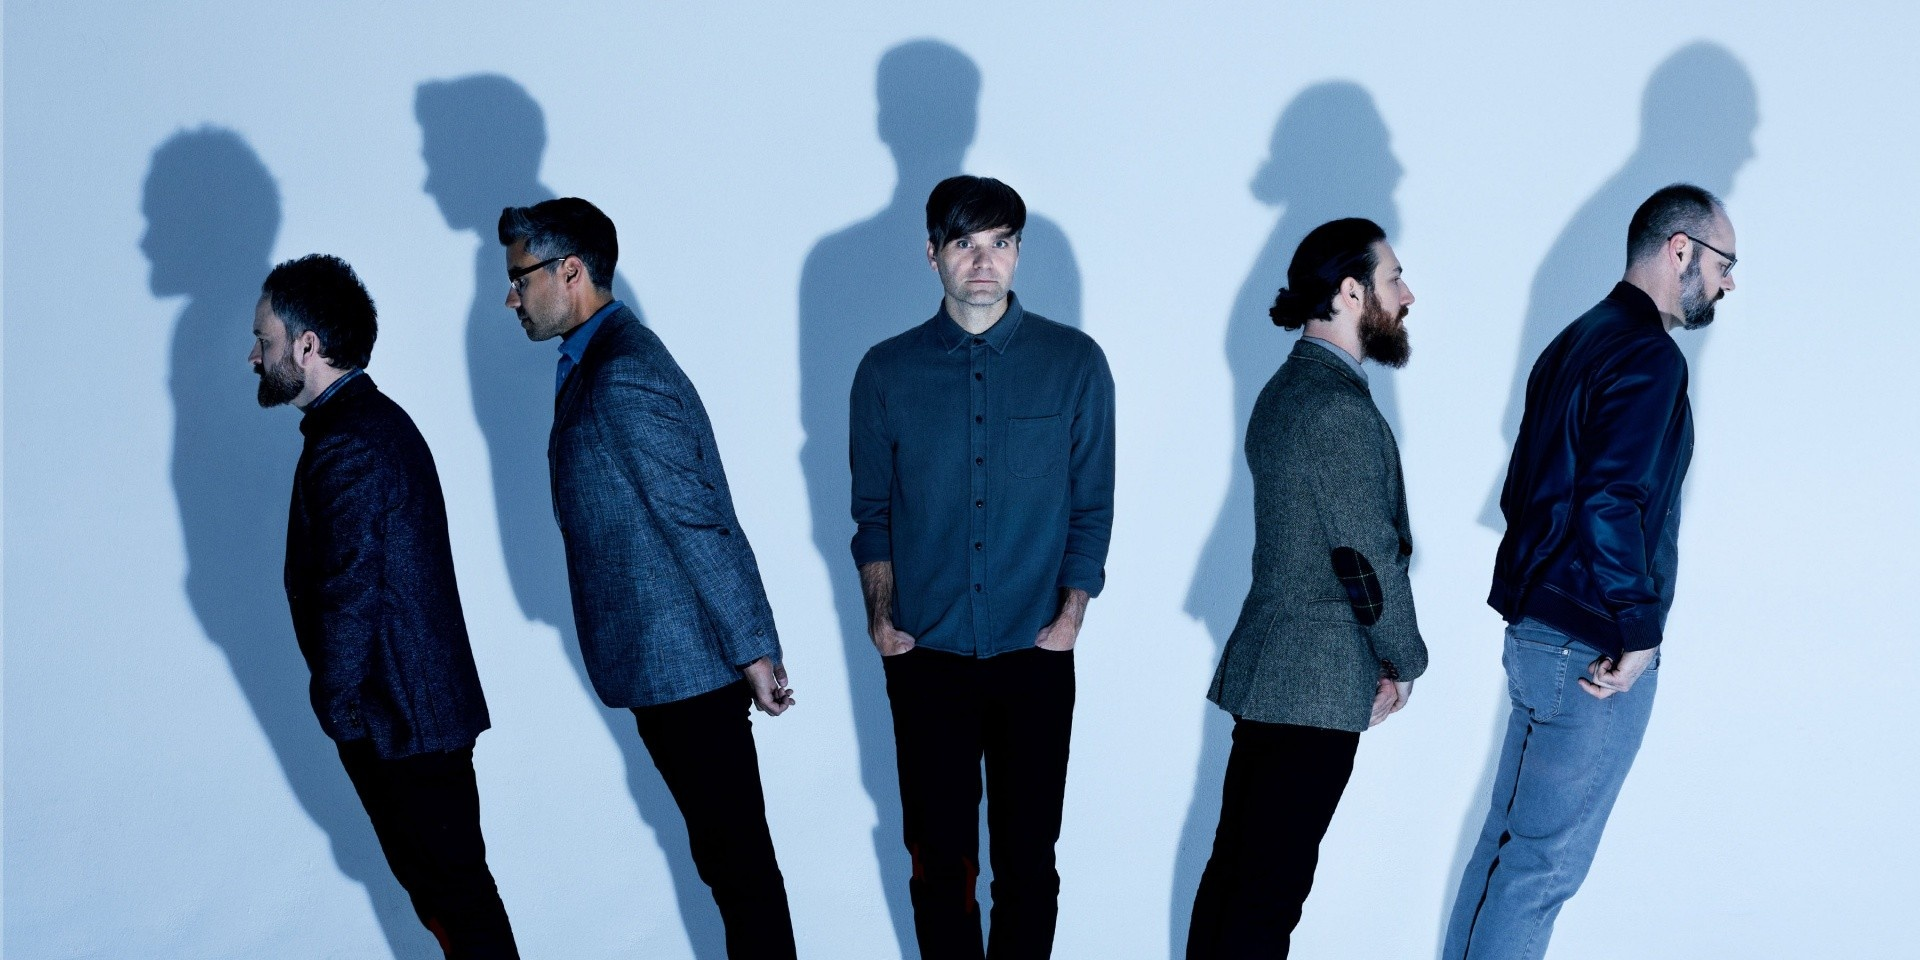 Death Cab For Cutie's new album Thank You For Today is now streaming - listen